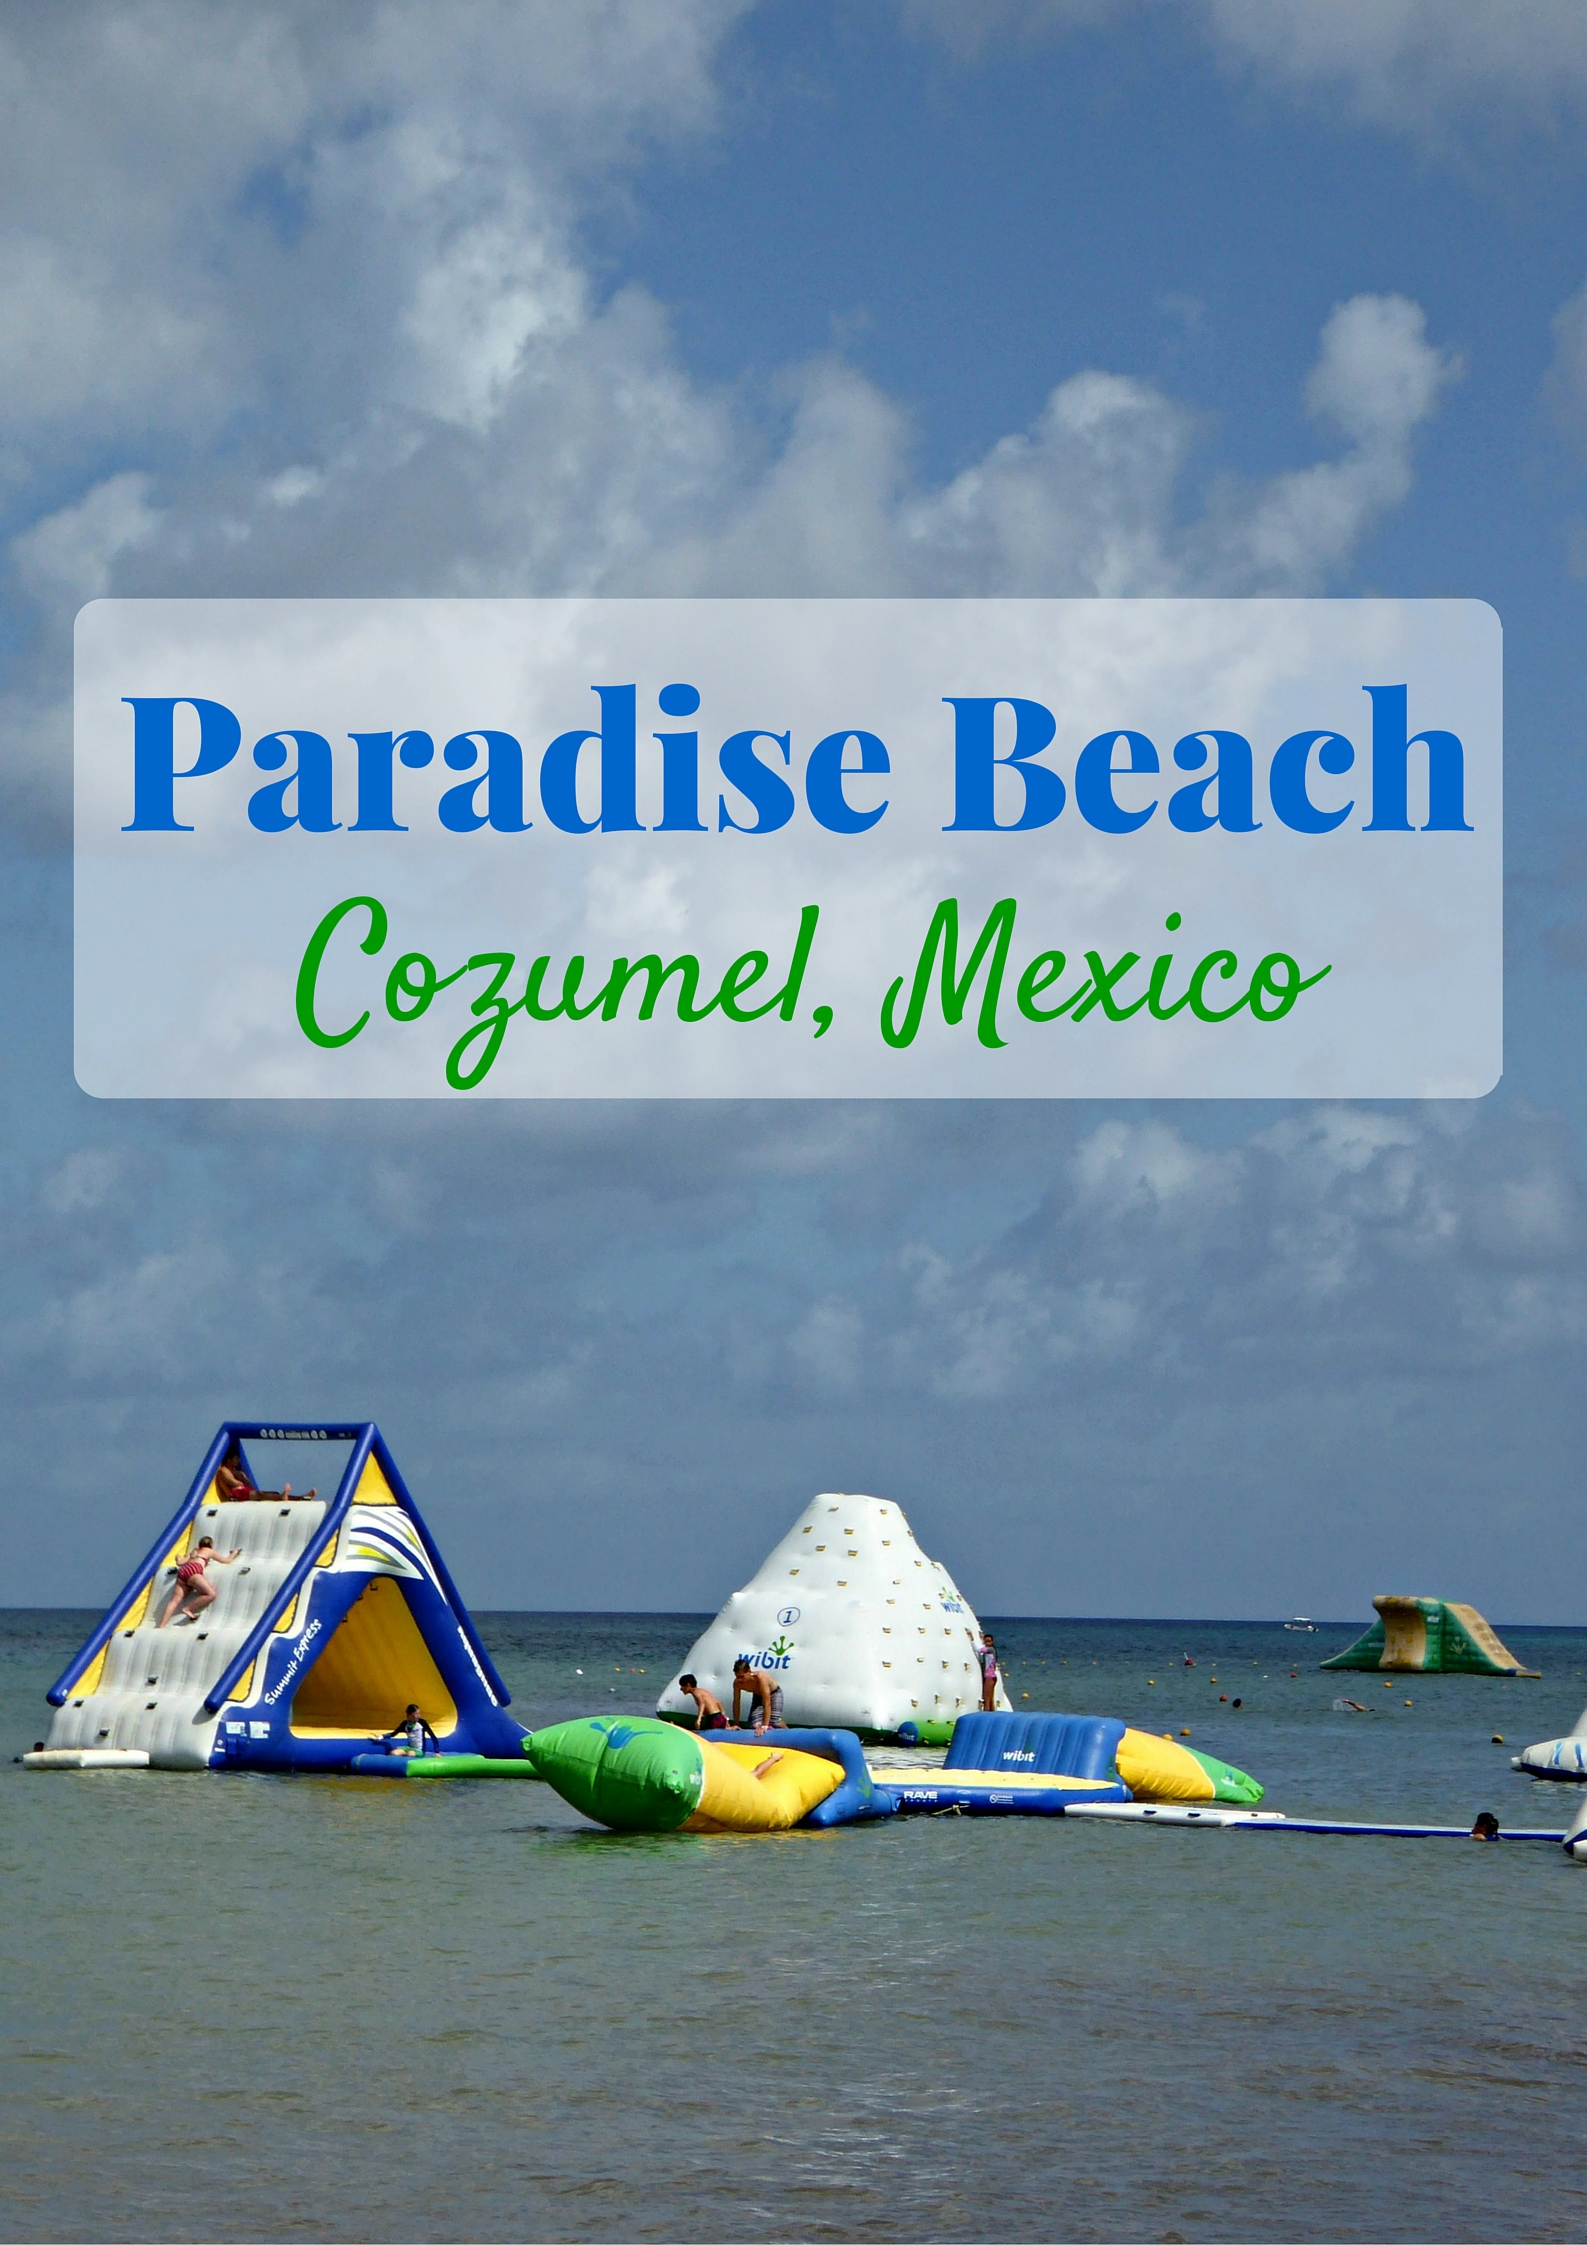 Paradise Beach In Cozumel Mexico As A Cruise Excursion